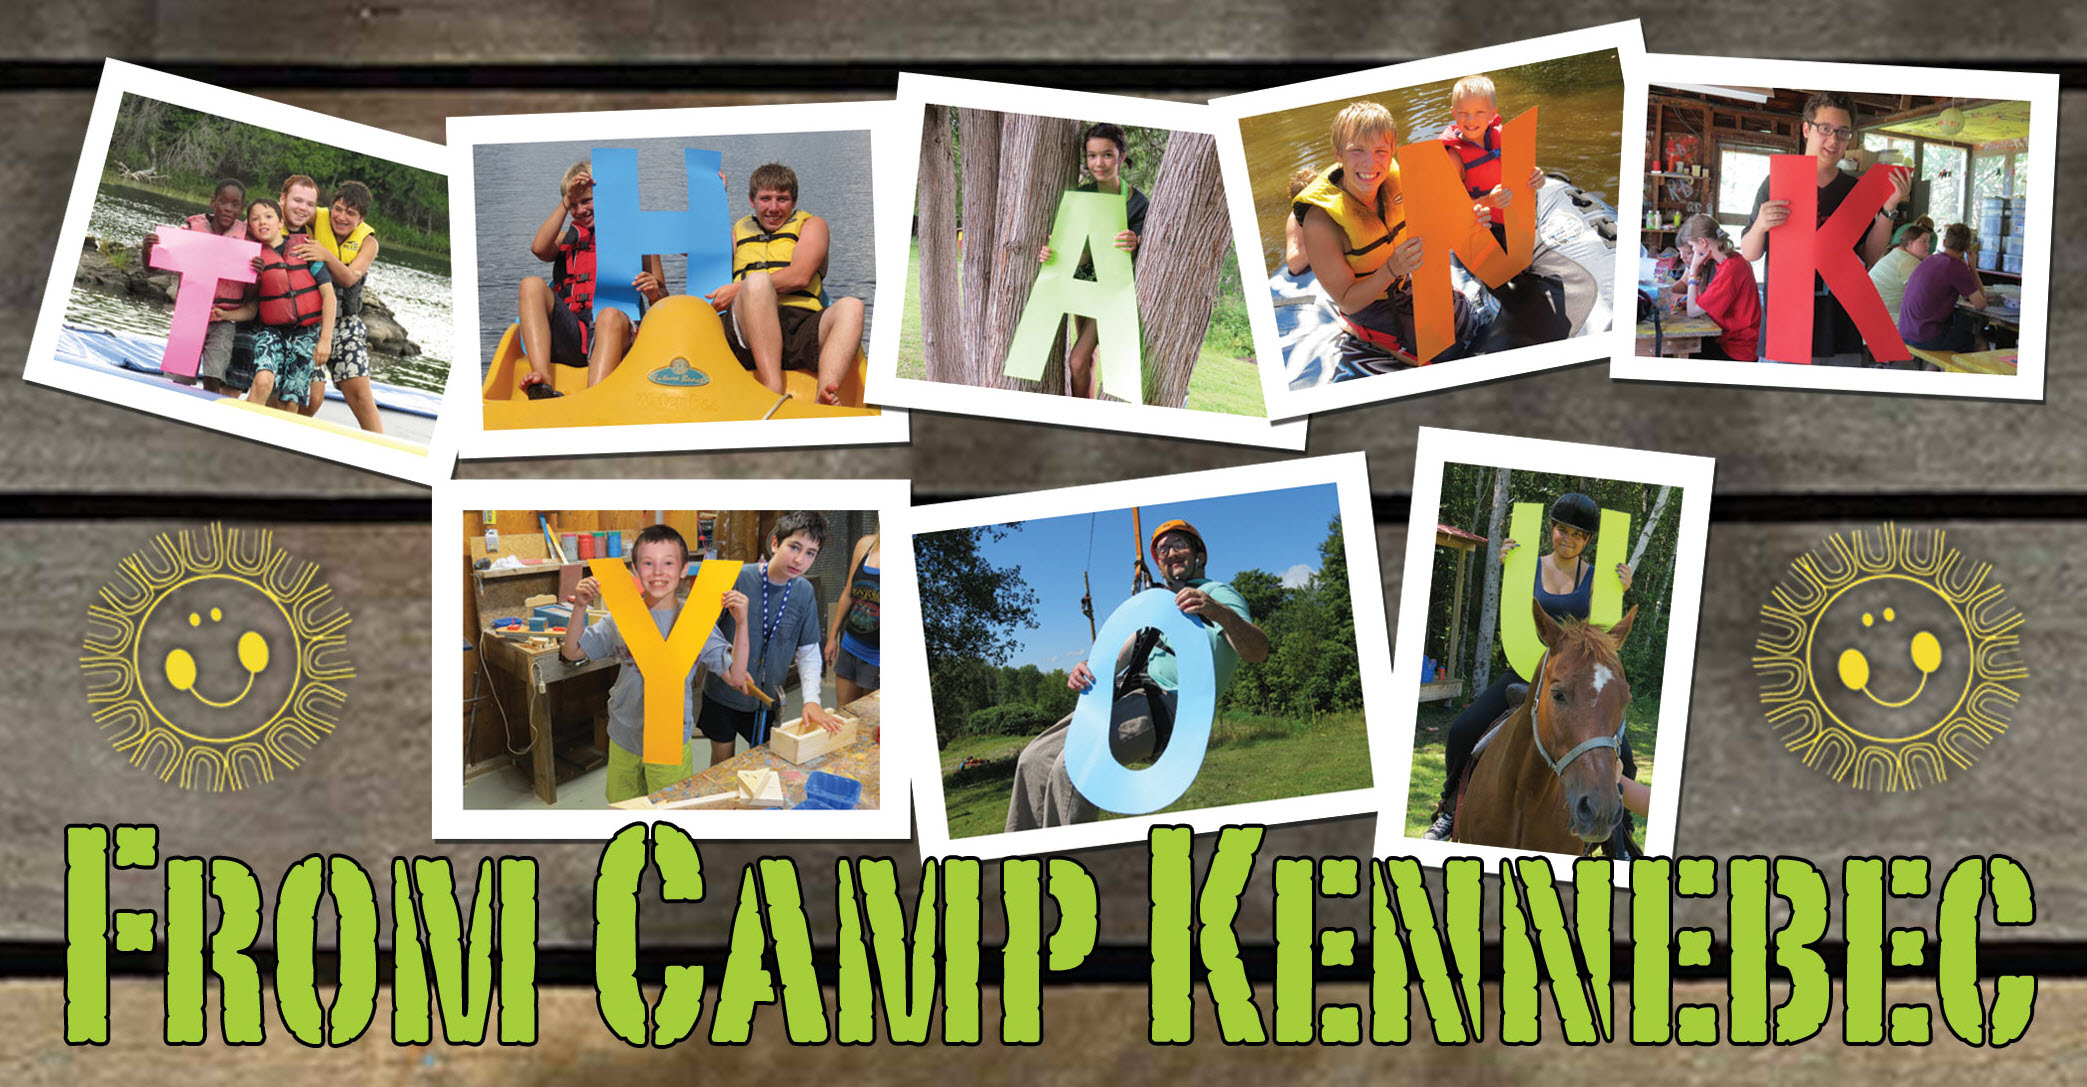 Thank You for Another Great Camp Kennebec Summer